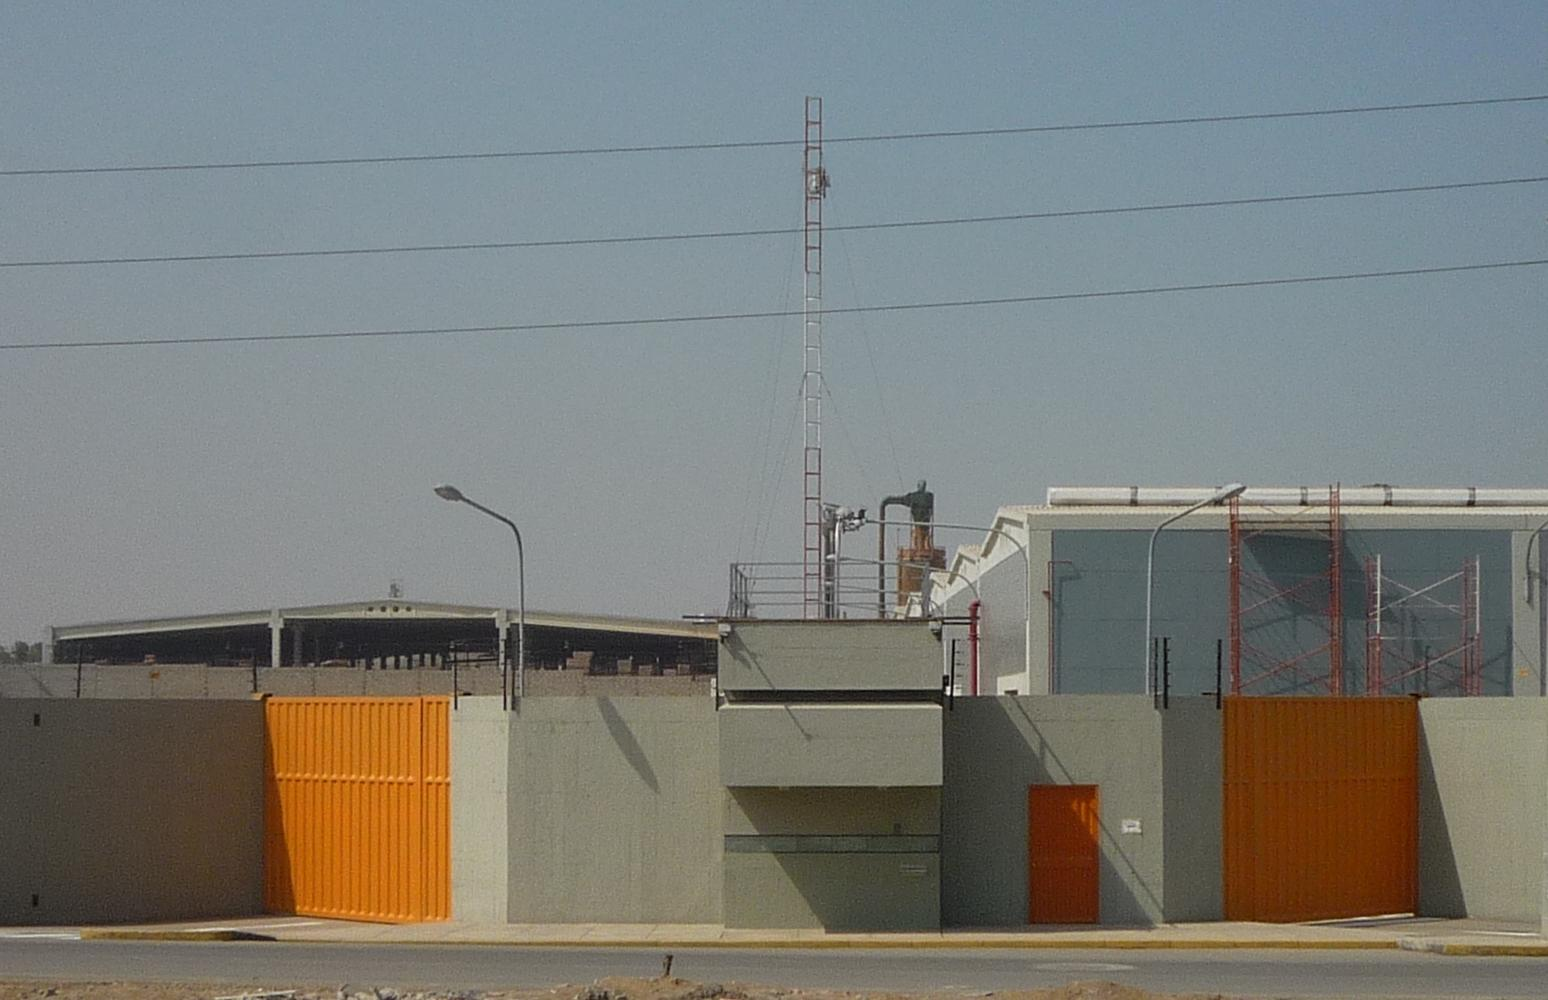 Local industrial en Alquiler Manuel Valle 200 Lurin, Lurin, Lima